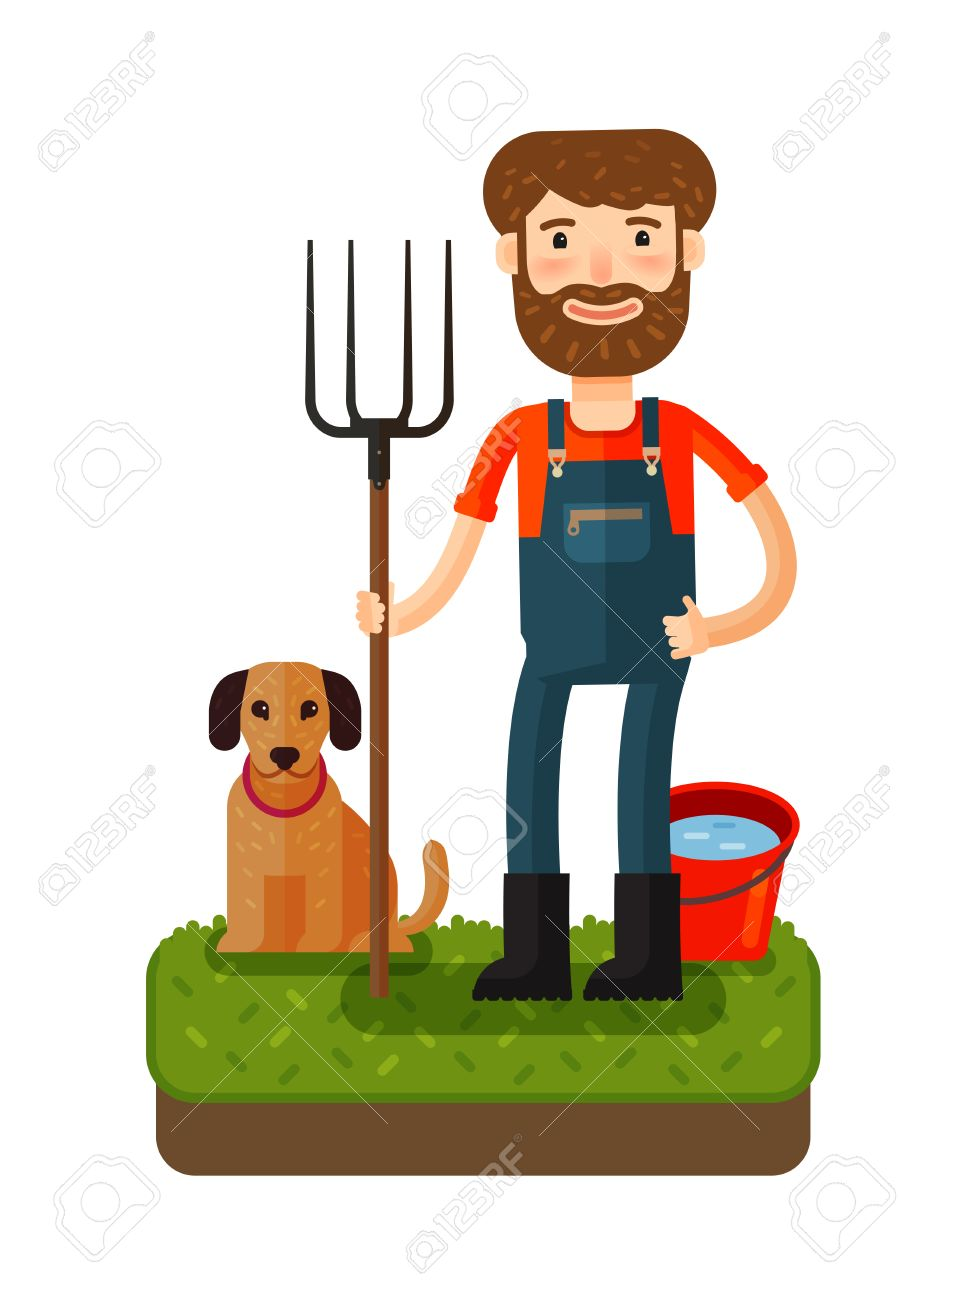 Farmer clipart, Farmer Transparent FREE for download on WebStockReview 2020